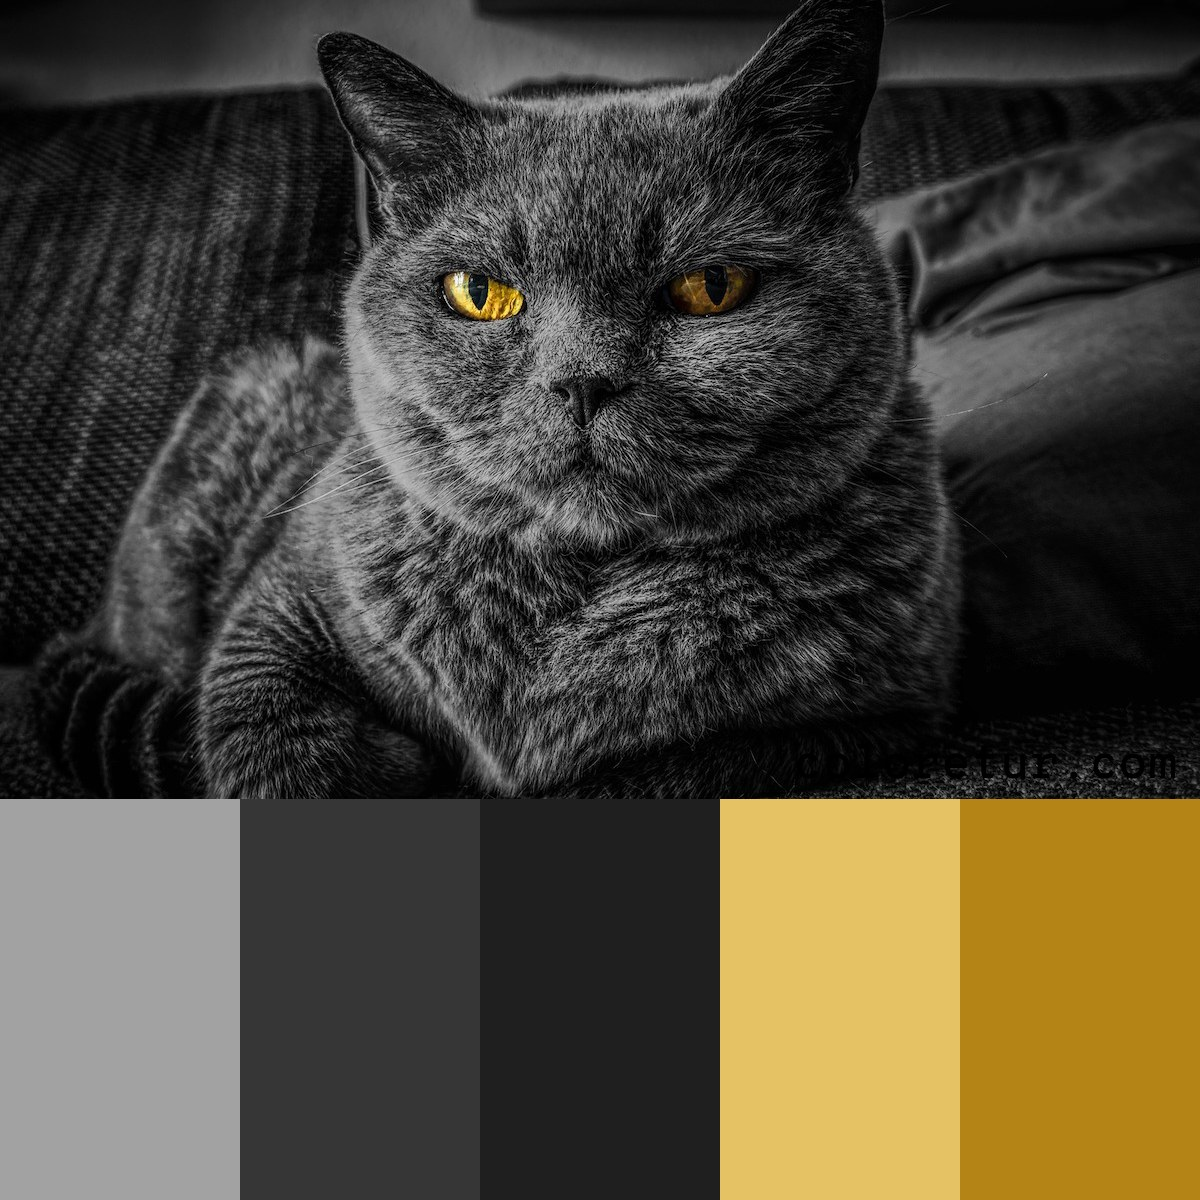 A black cat with piercing eyes brings striking contrast to this gray palette.